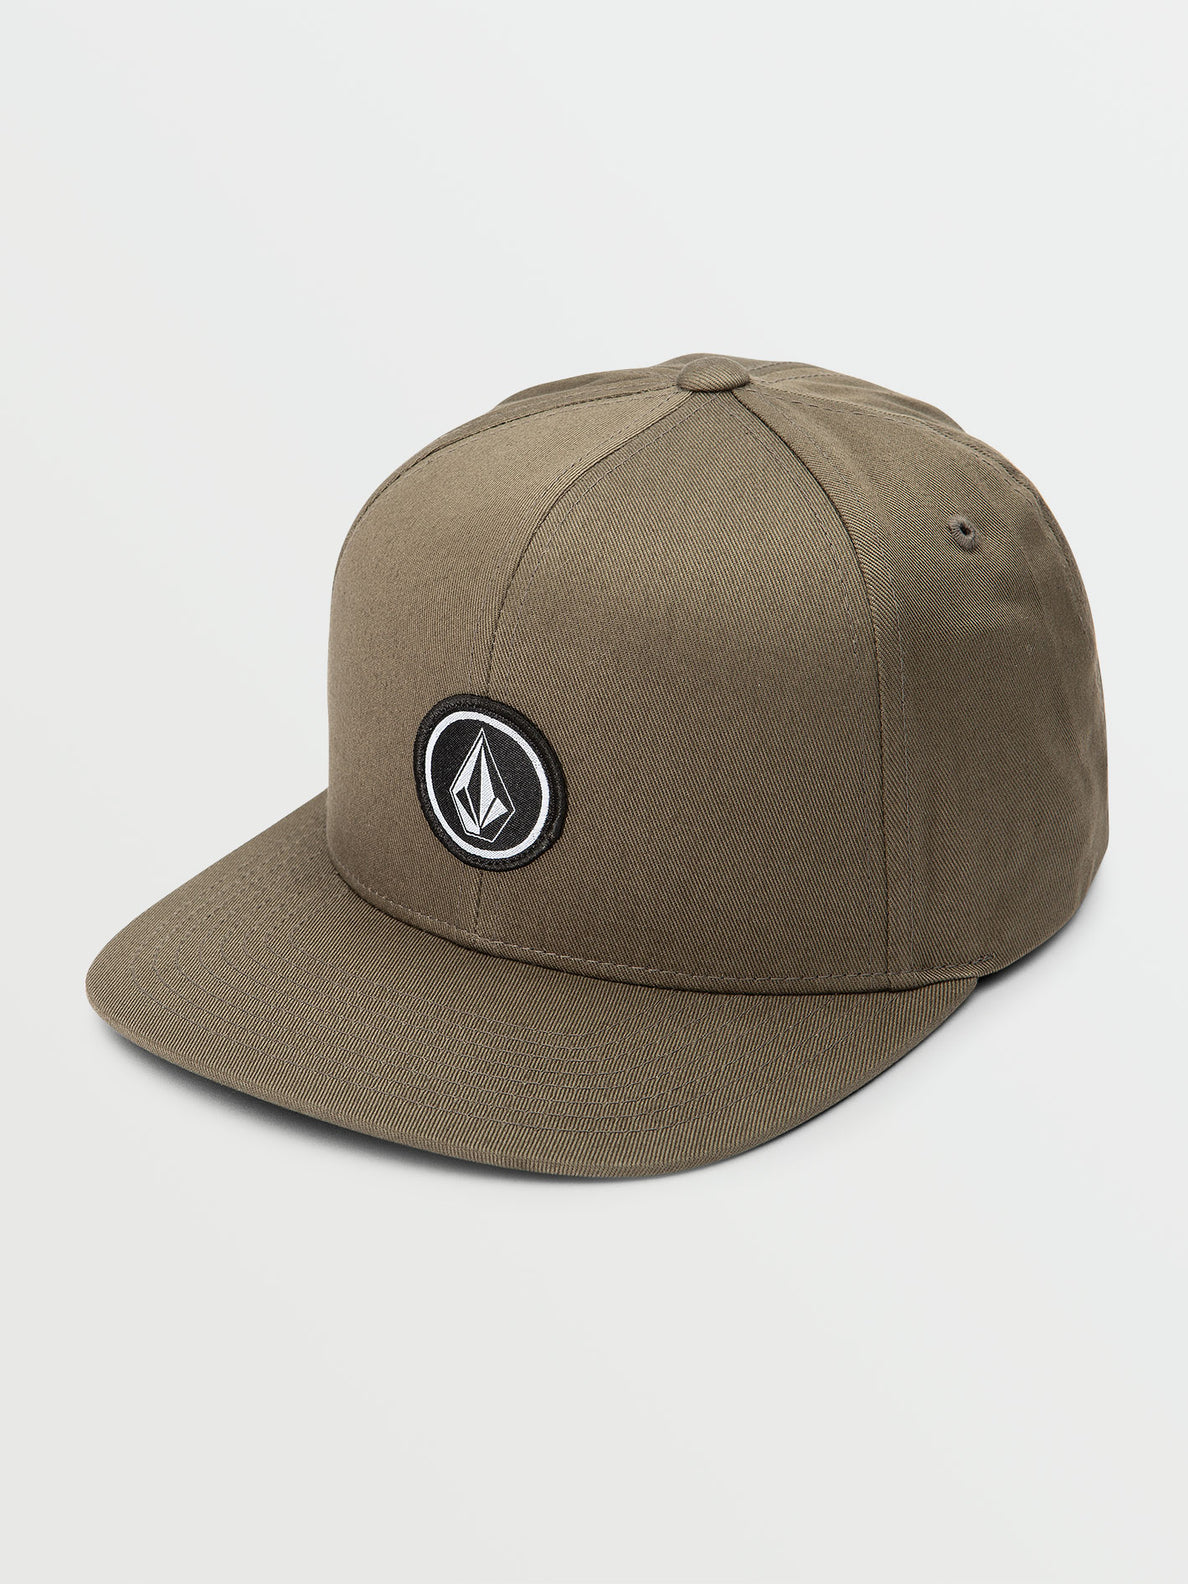 Quarter Twill Hat - Military